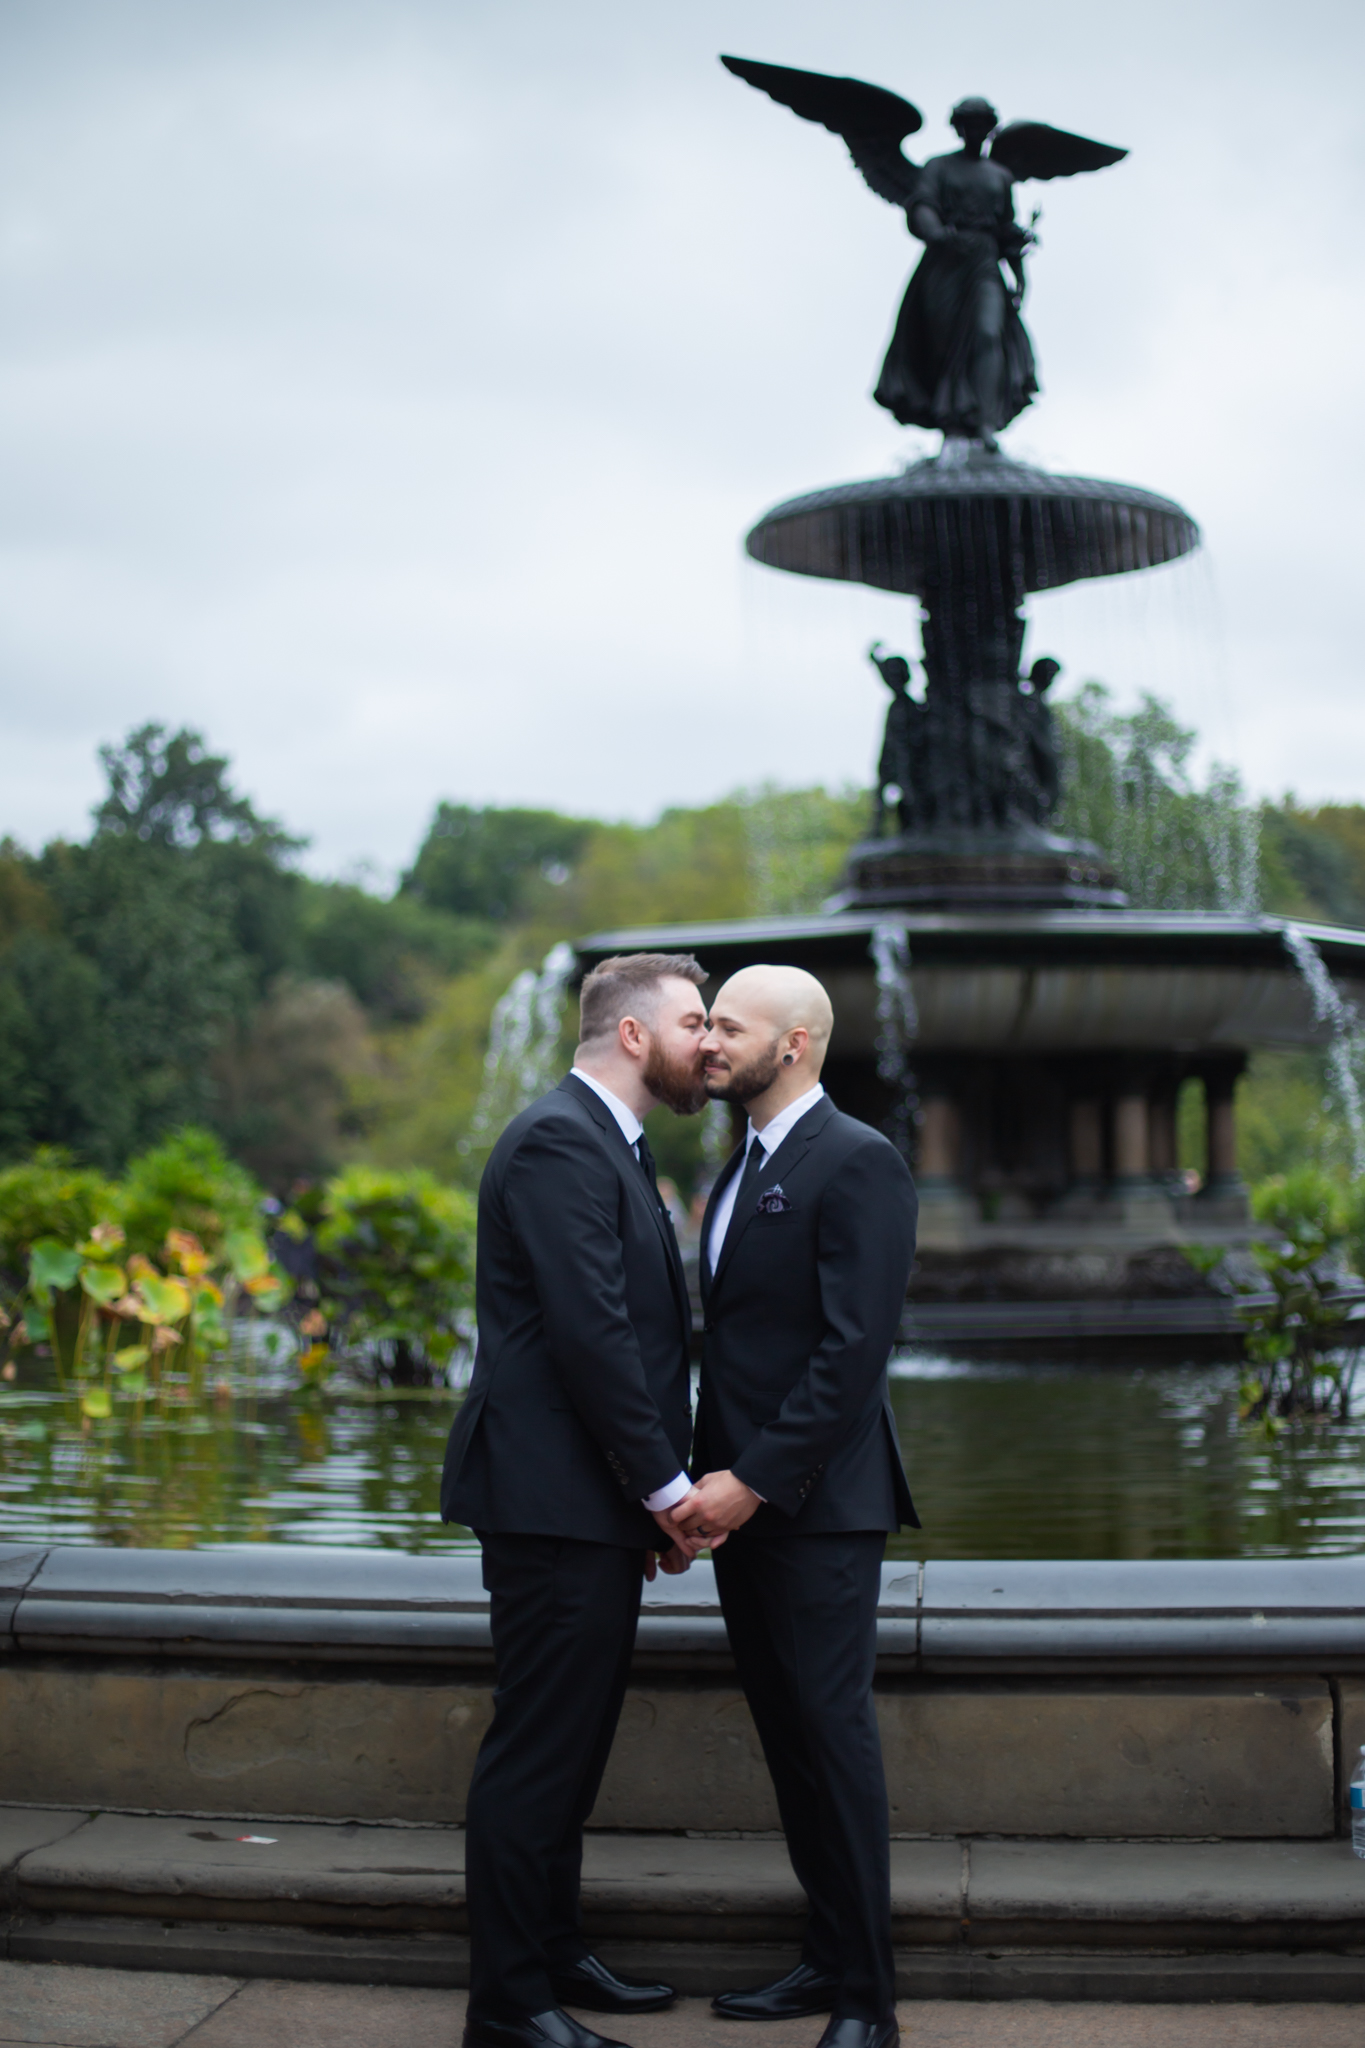 Kate-Alison-Photography-Central-Park-Elopement-Robert-Michael-100618-132.jpg